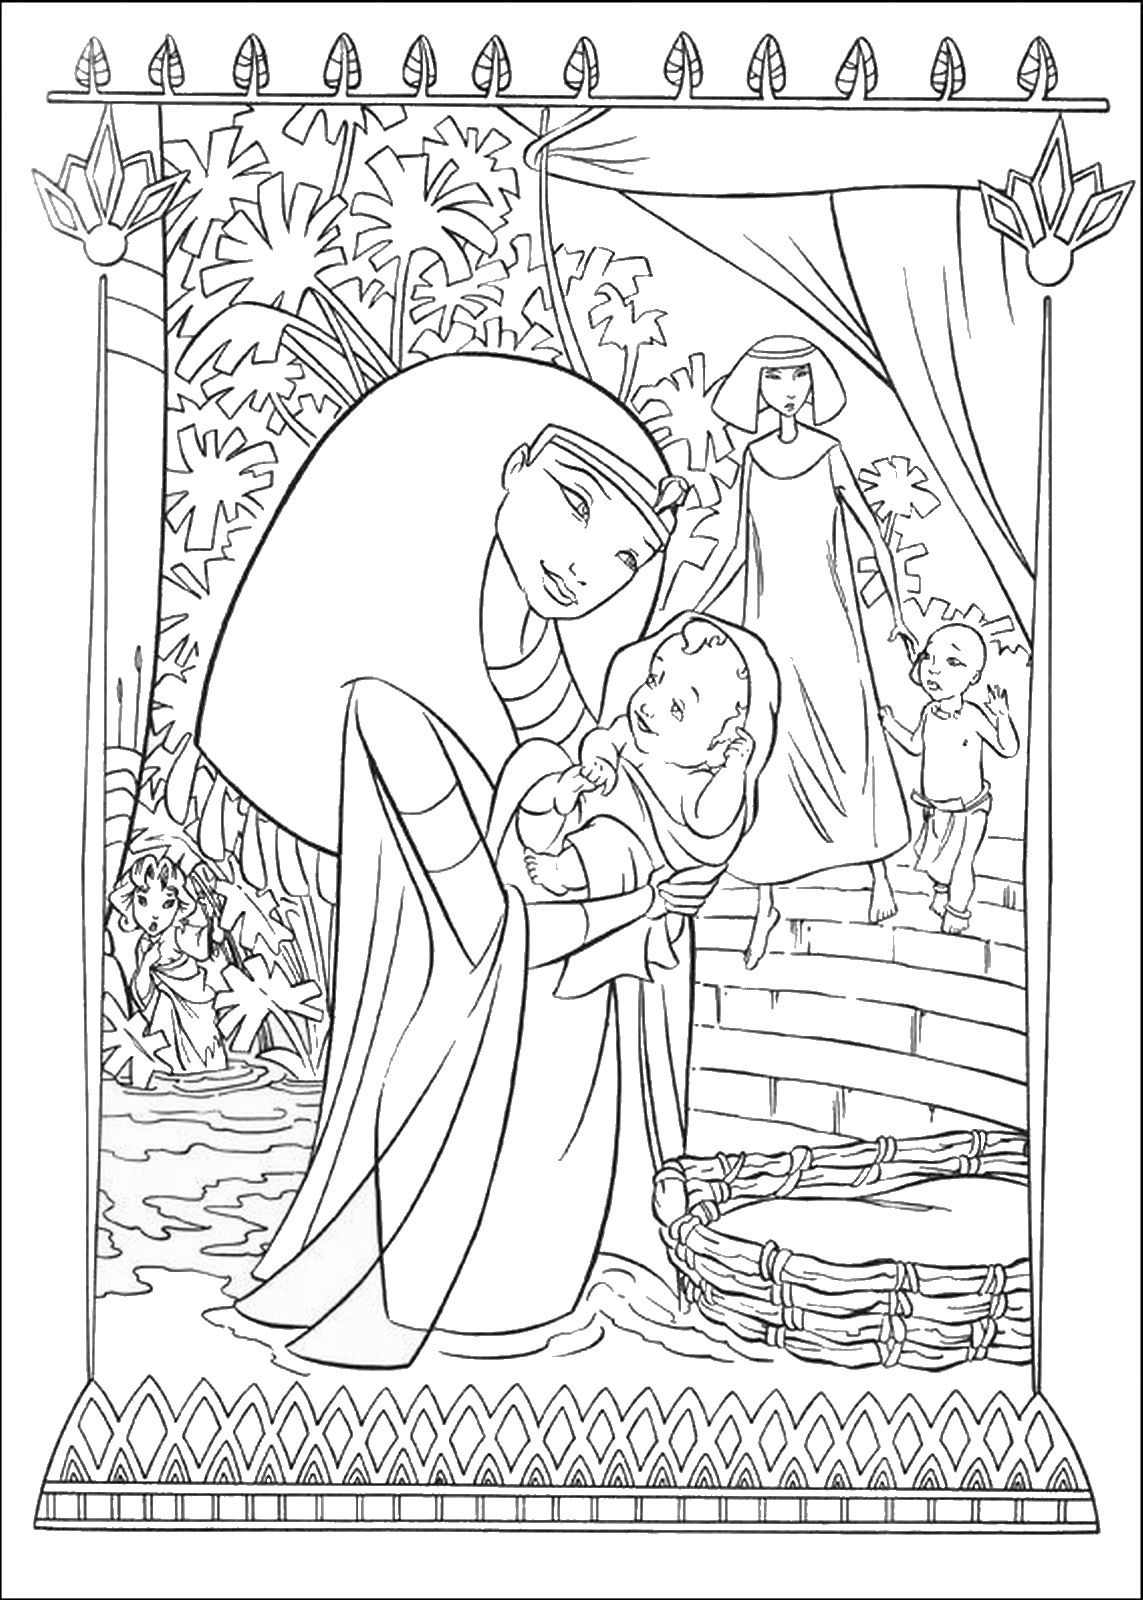 The Prince of Egypt Coloring Pages | HS - History/Geography/Bible ...